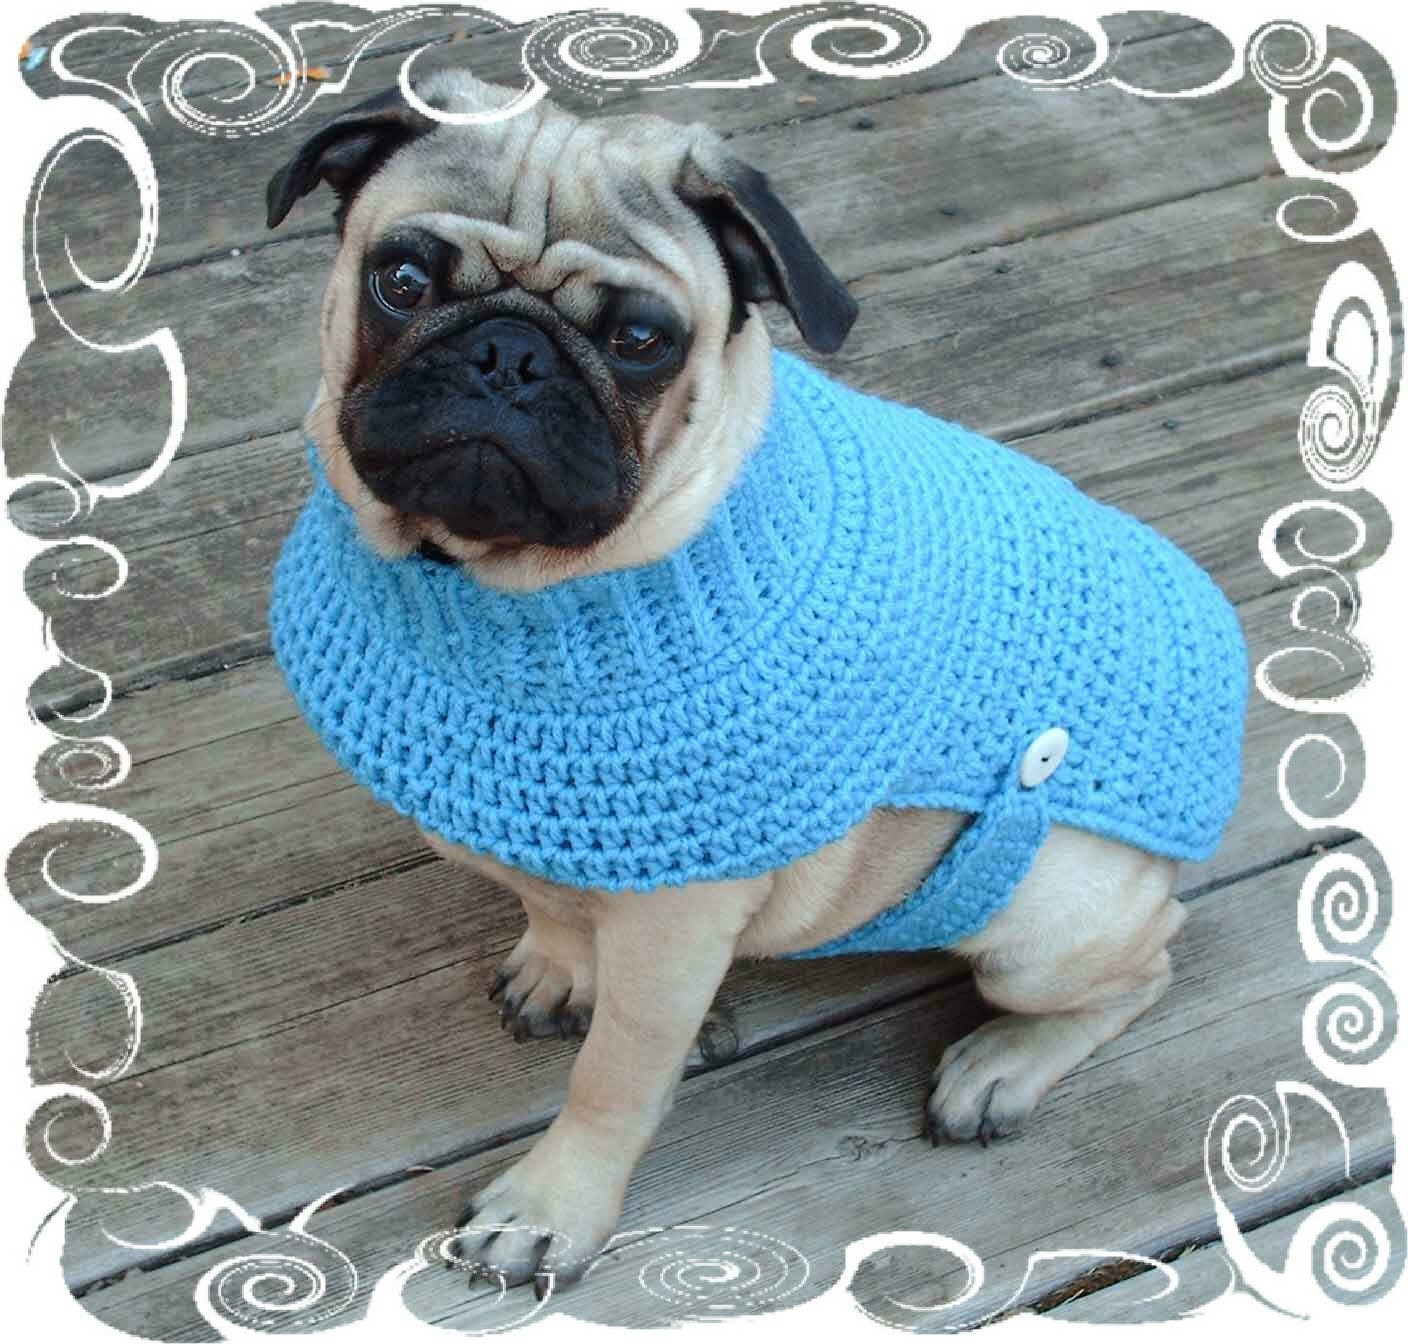 Crochet Dog Coat Pattern Unique Dog Sweater Crochet Pattern Puppy Crochet Sweater by Hmcquigg Of Marvelous 41 Photos Crochet Dog Coat Pattern